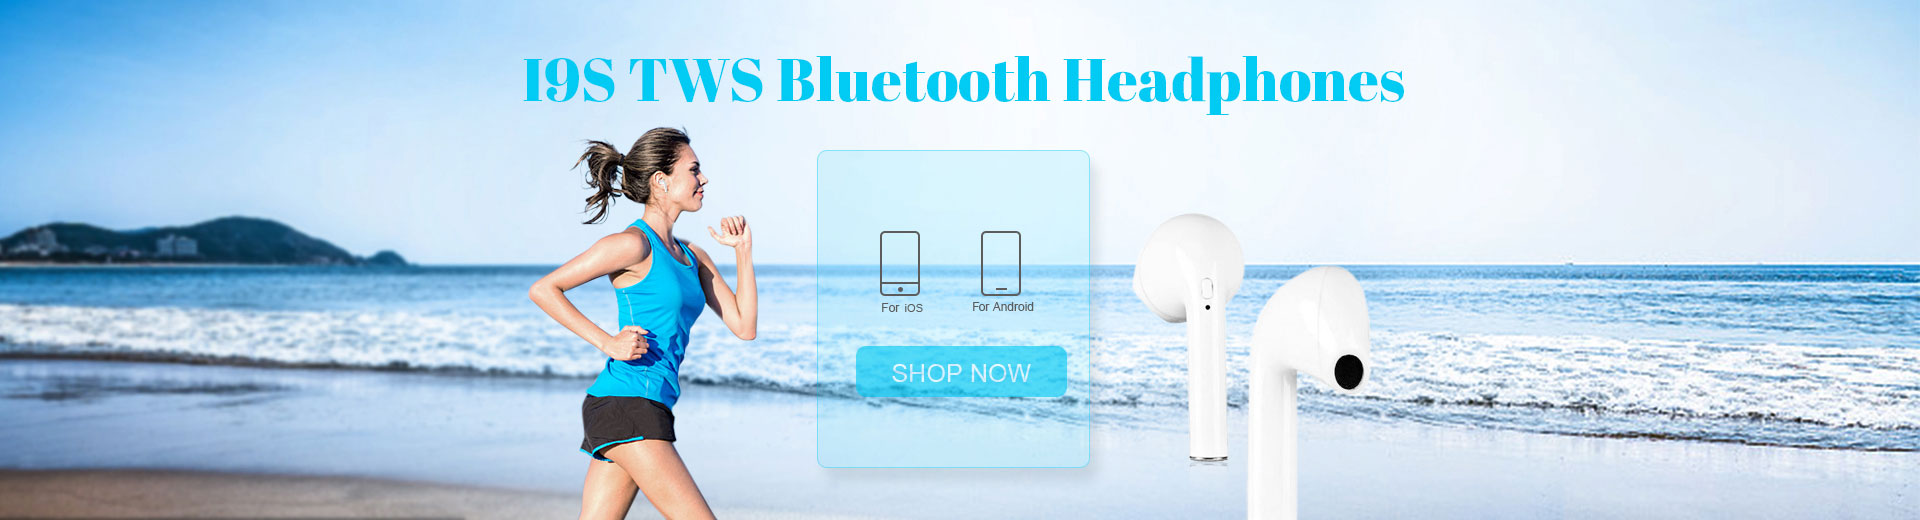 i9S TWS Bluetooth Headphones